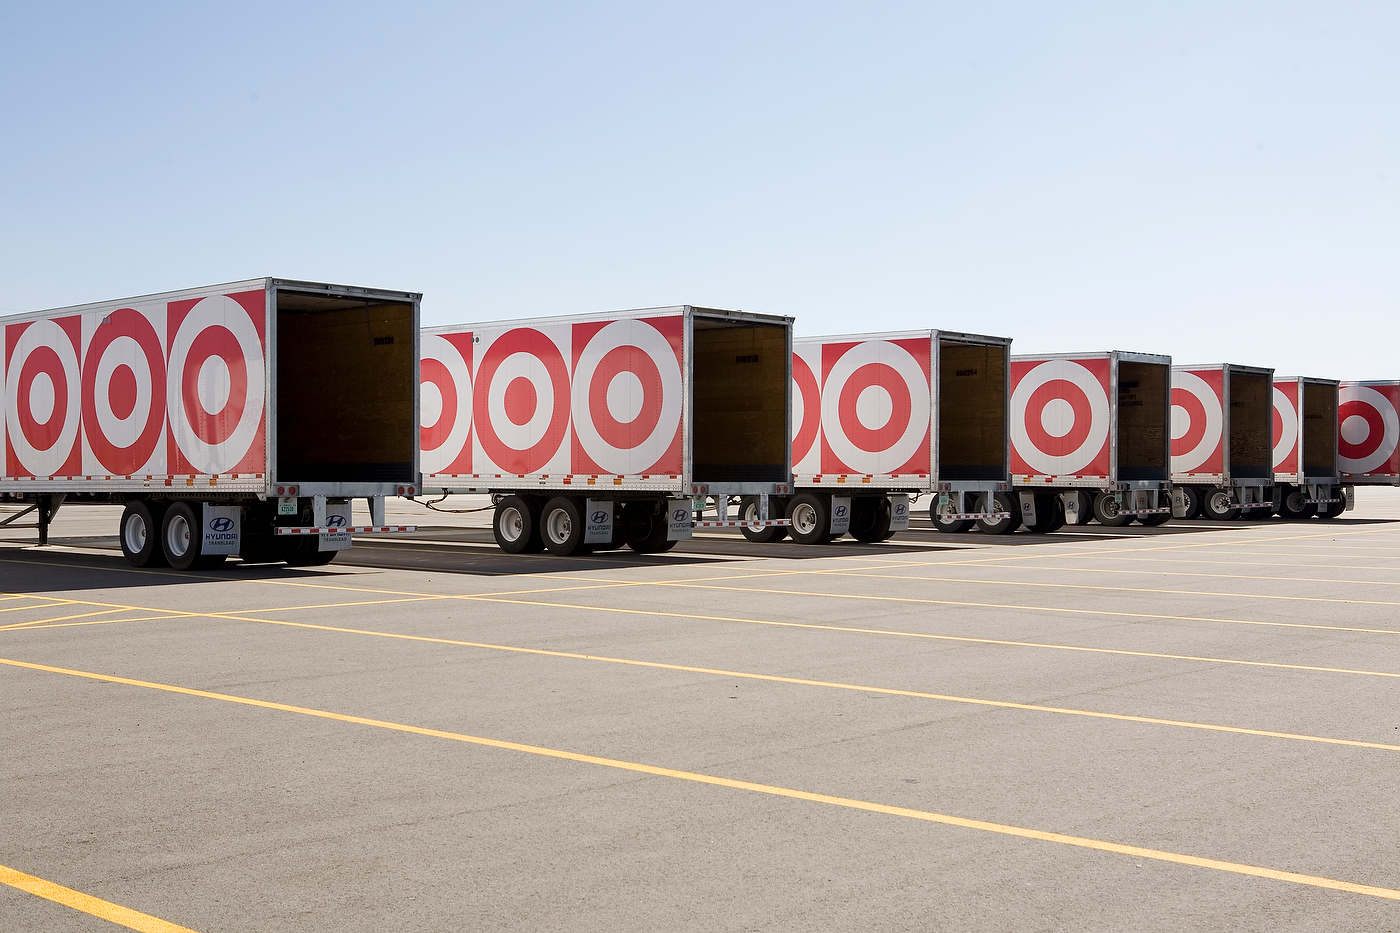 Target warehouse, for Target.